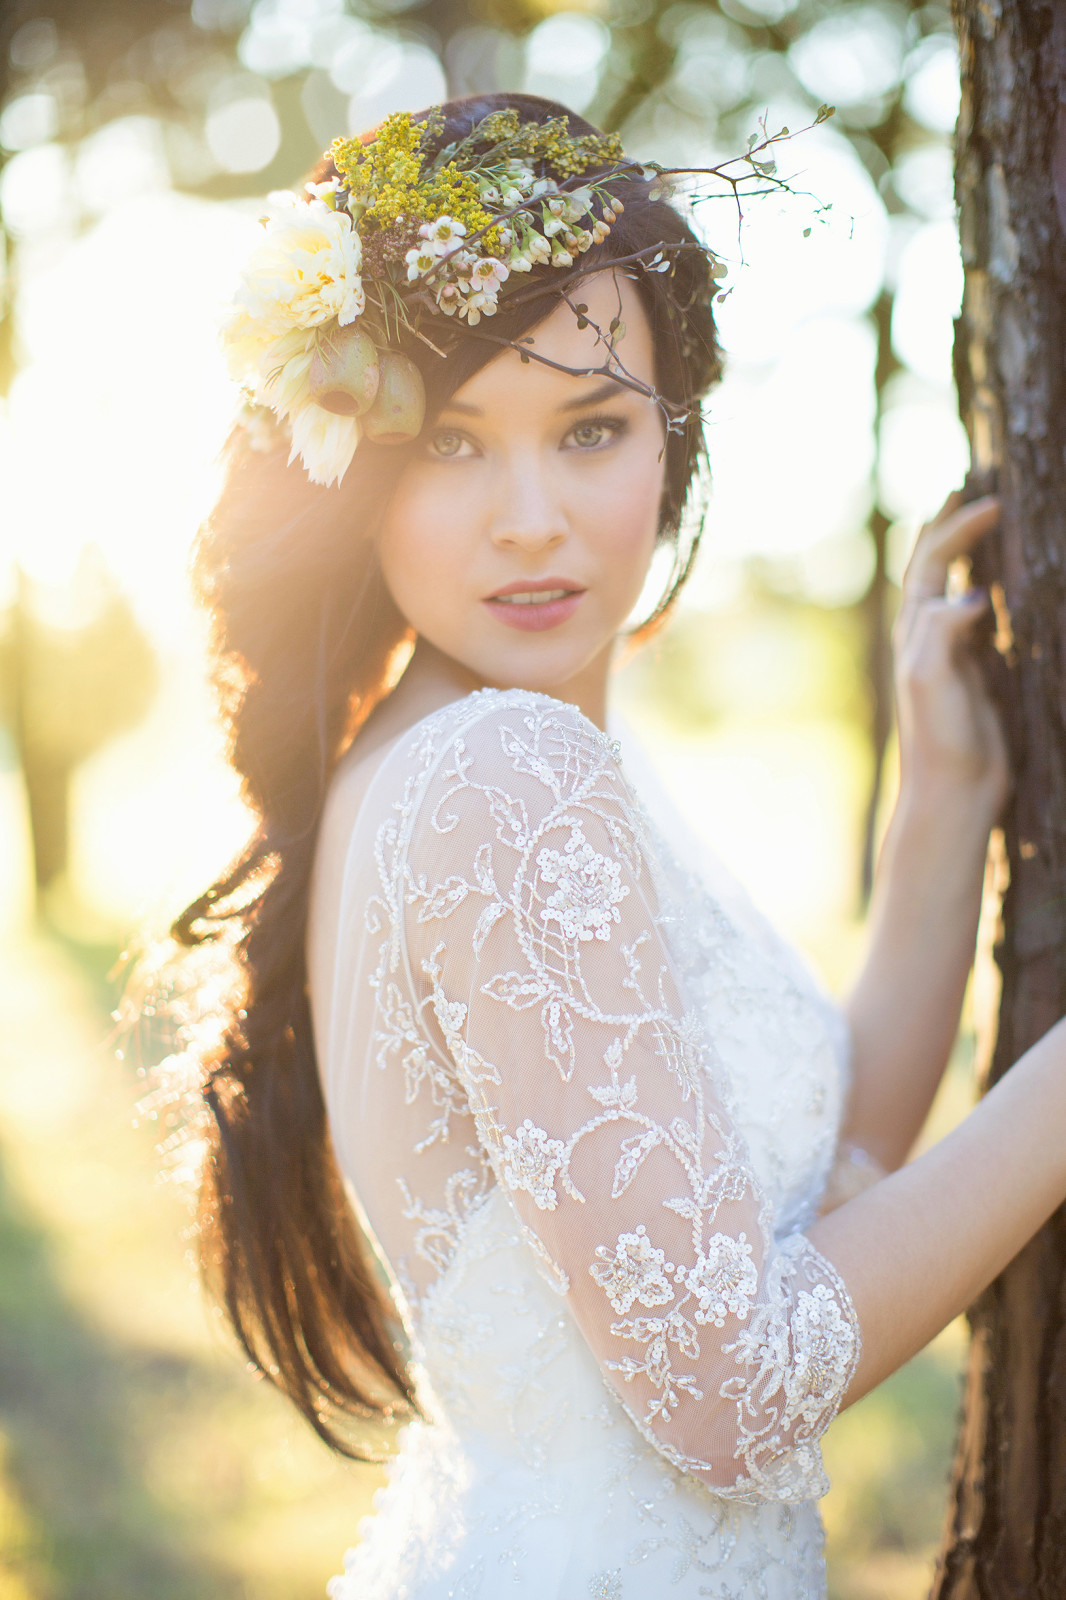 Roz-la-Kelin-Chanele-Rose-Flowers-Sydney-Bridal-Photographer